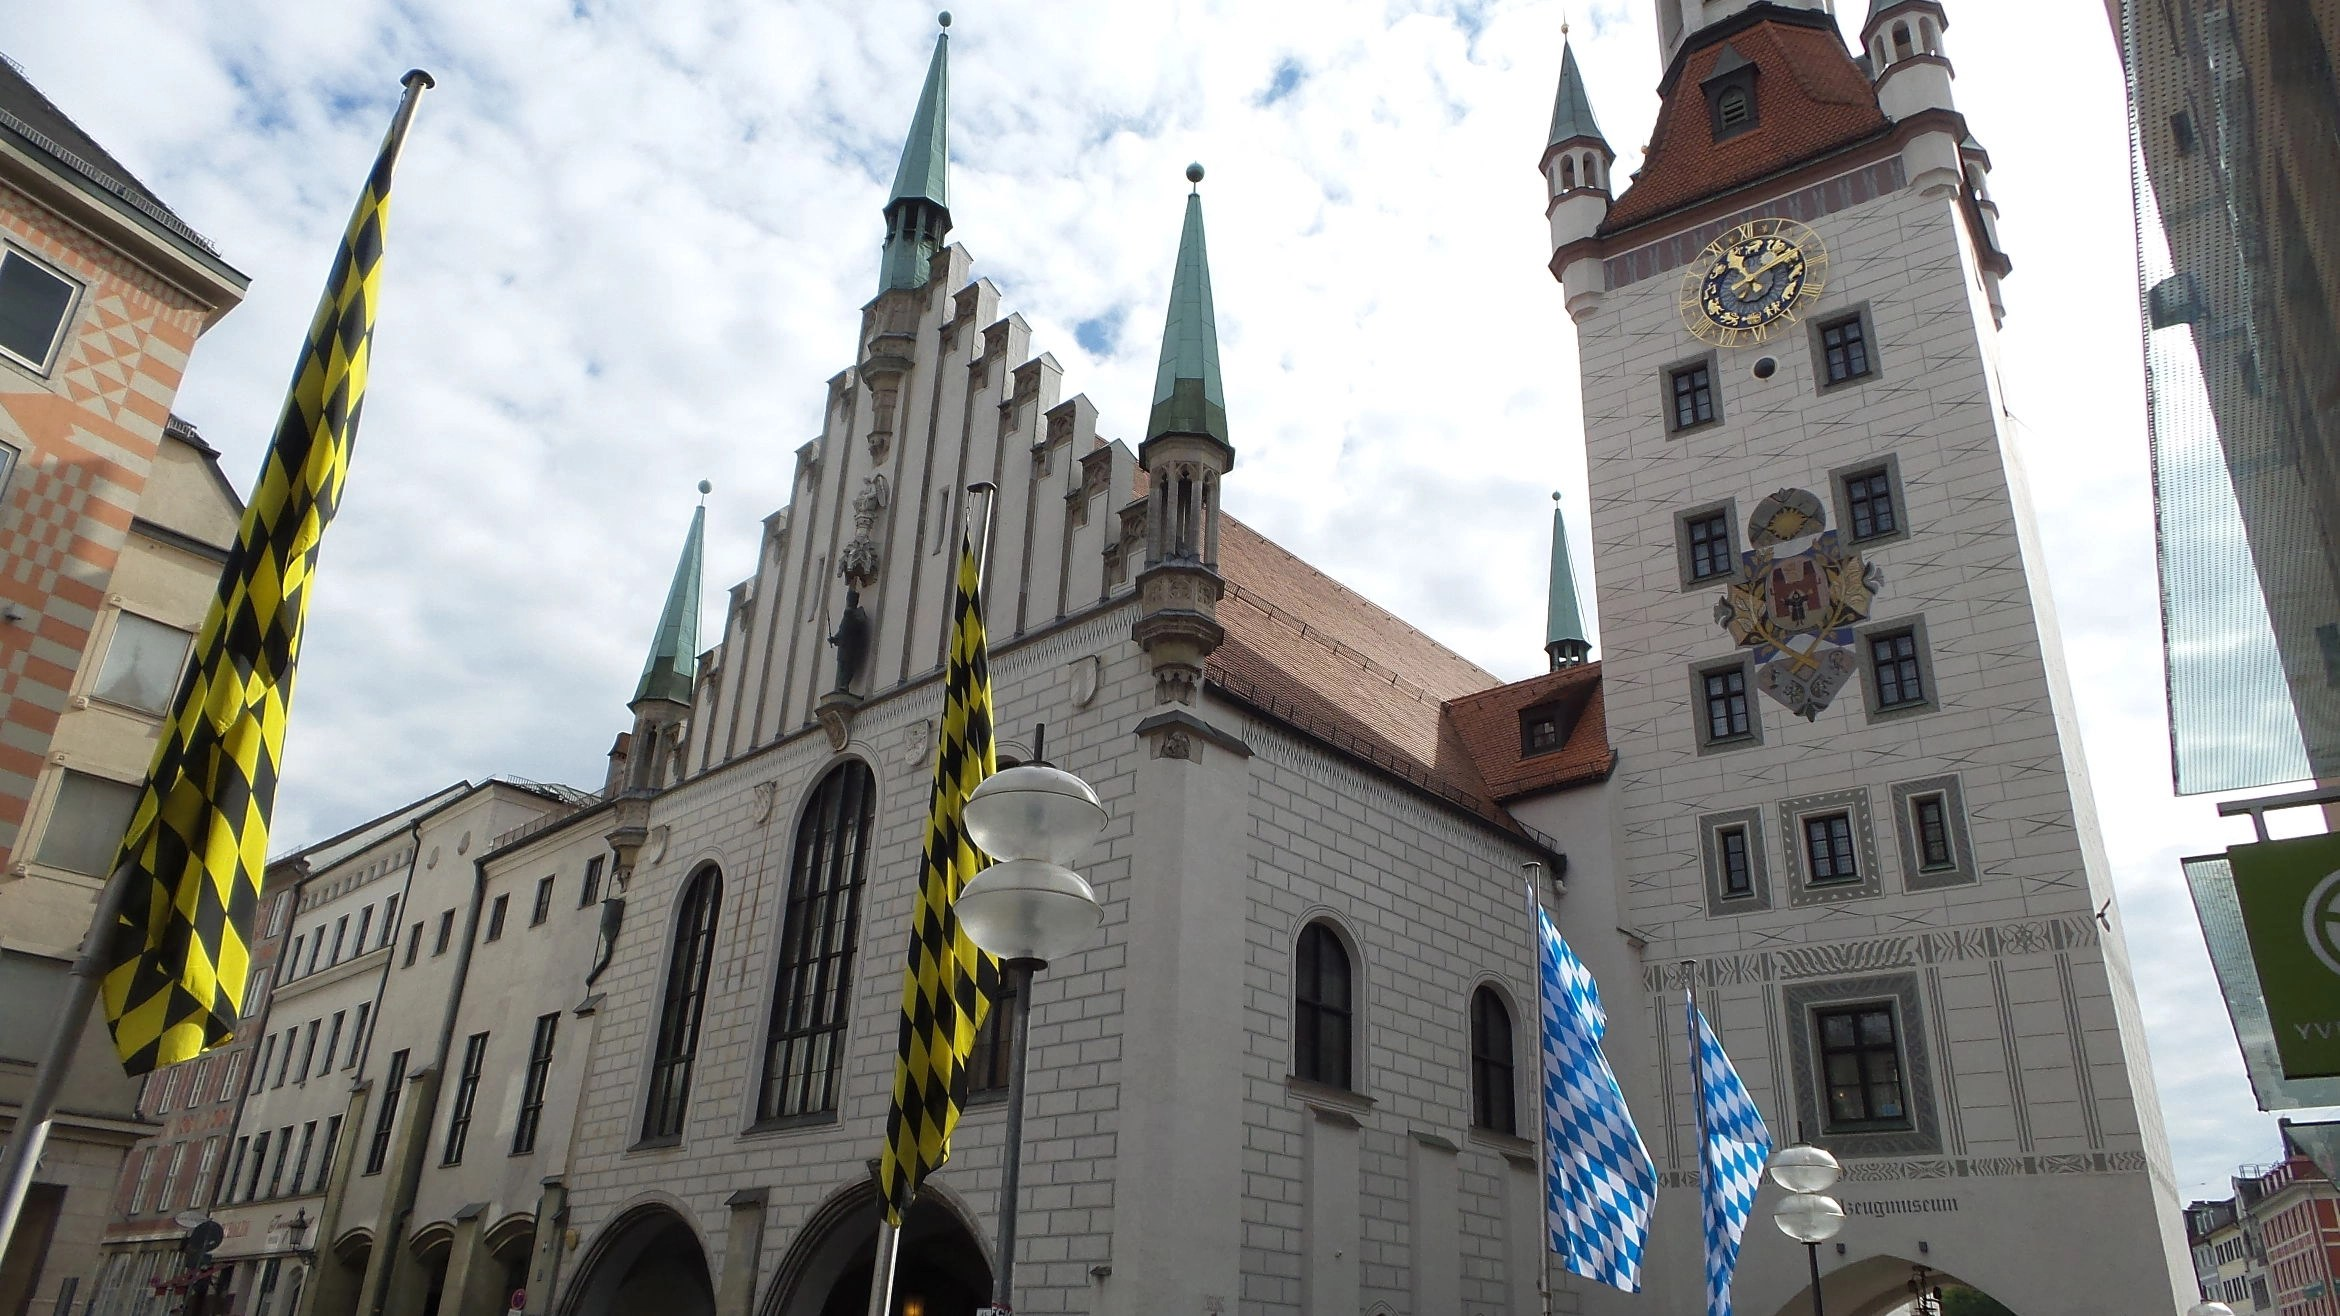 Altes Rathaus known as the Old Town in Munich, Germany.